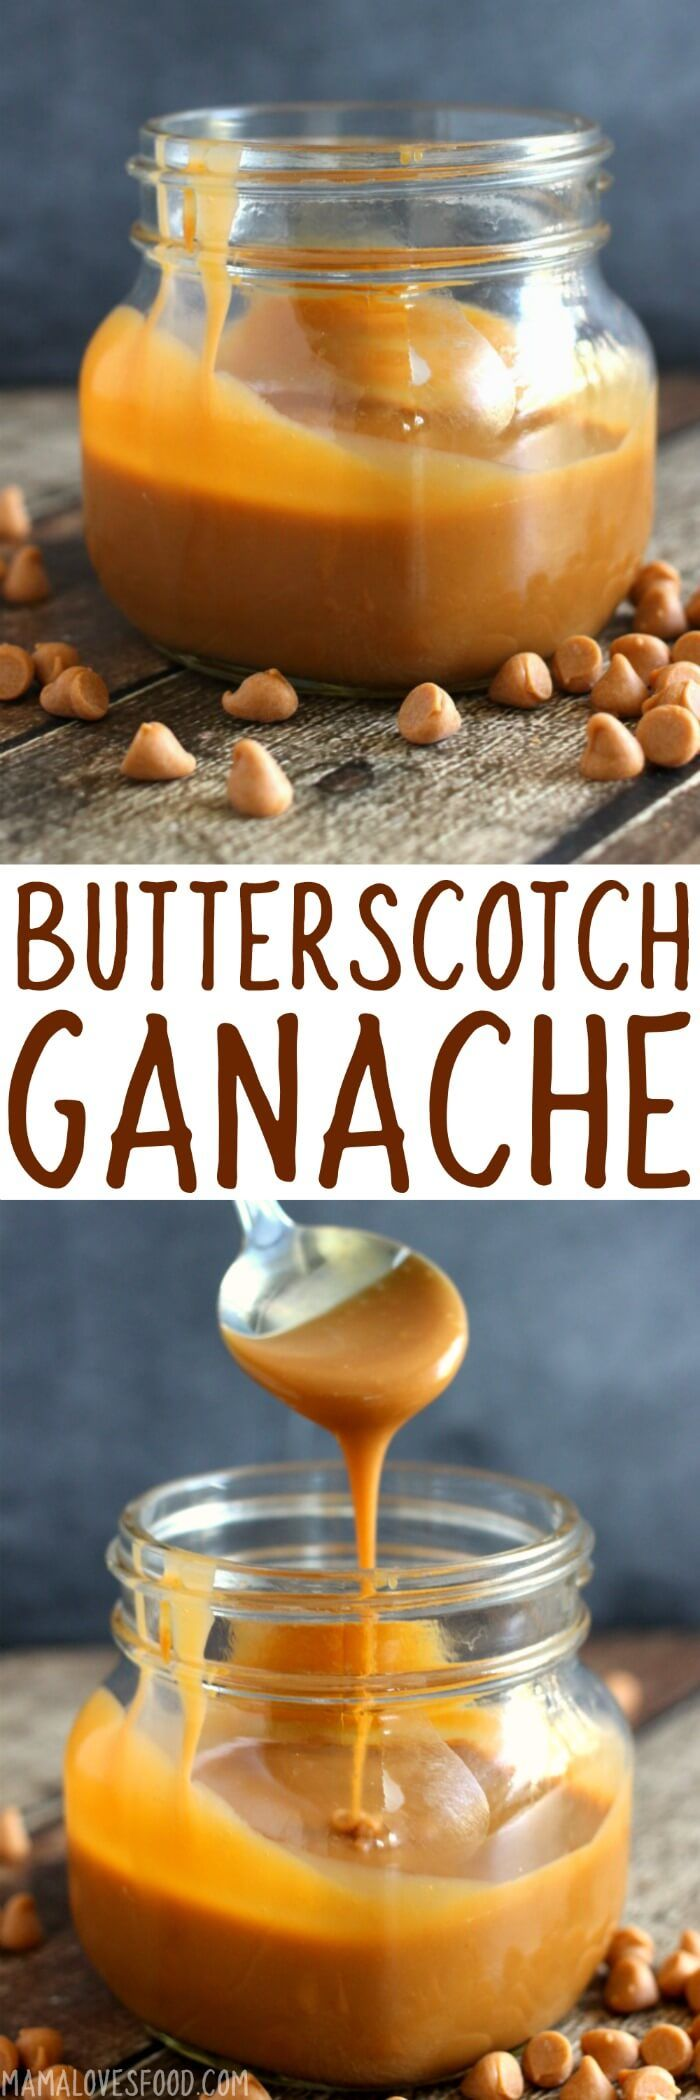 OMG SOOOOOO GOOD!!! Easy Butterscotch Ganache